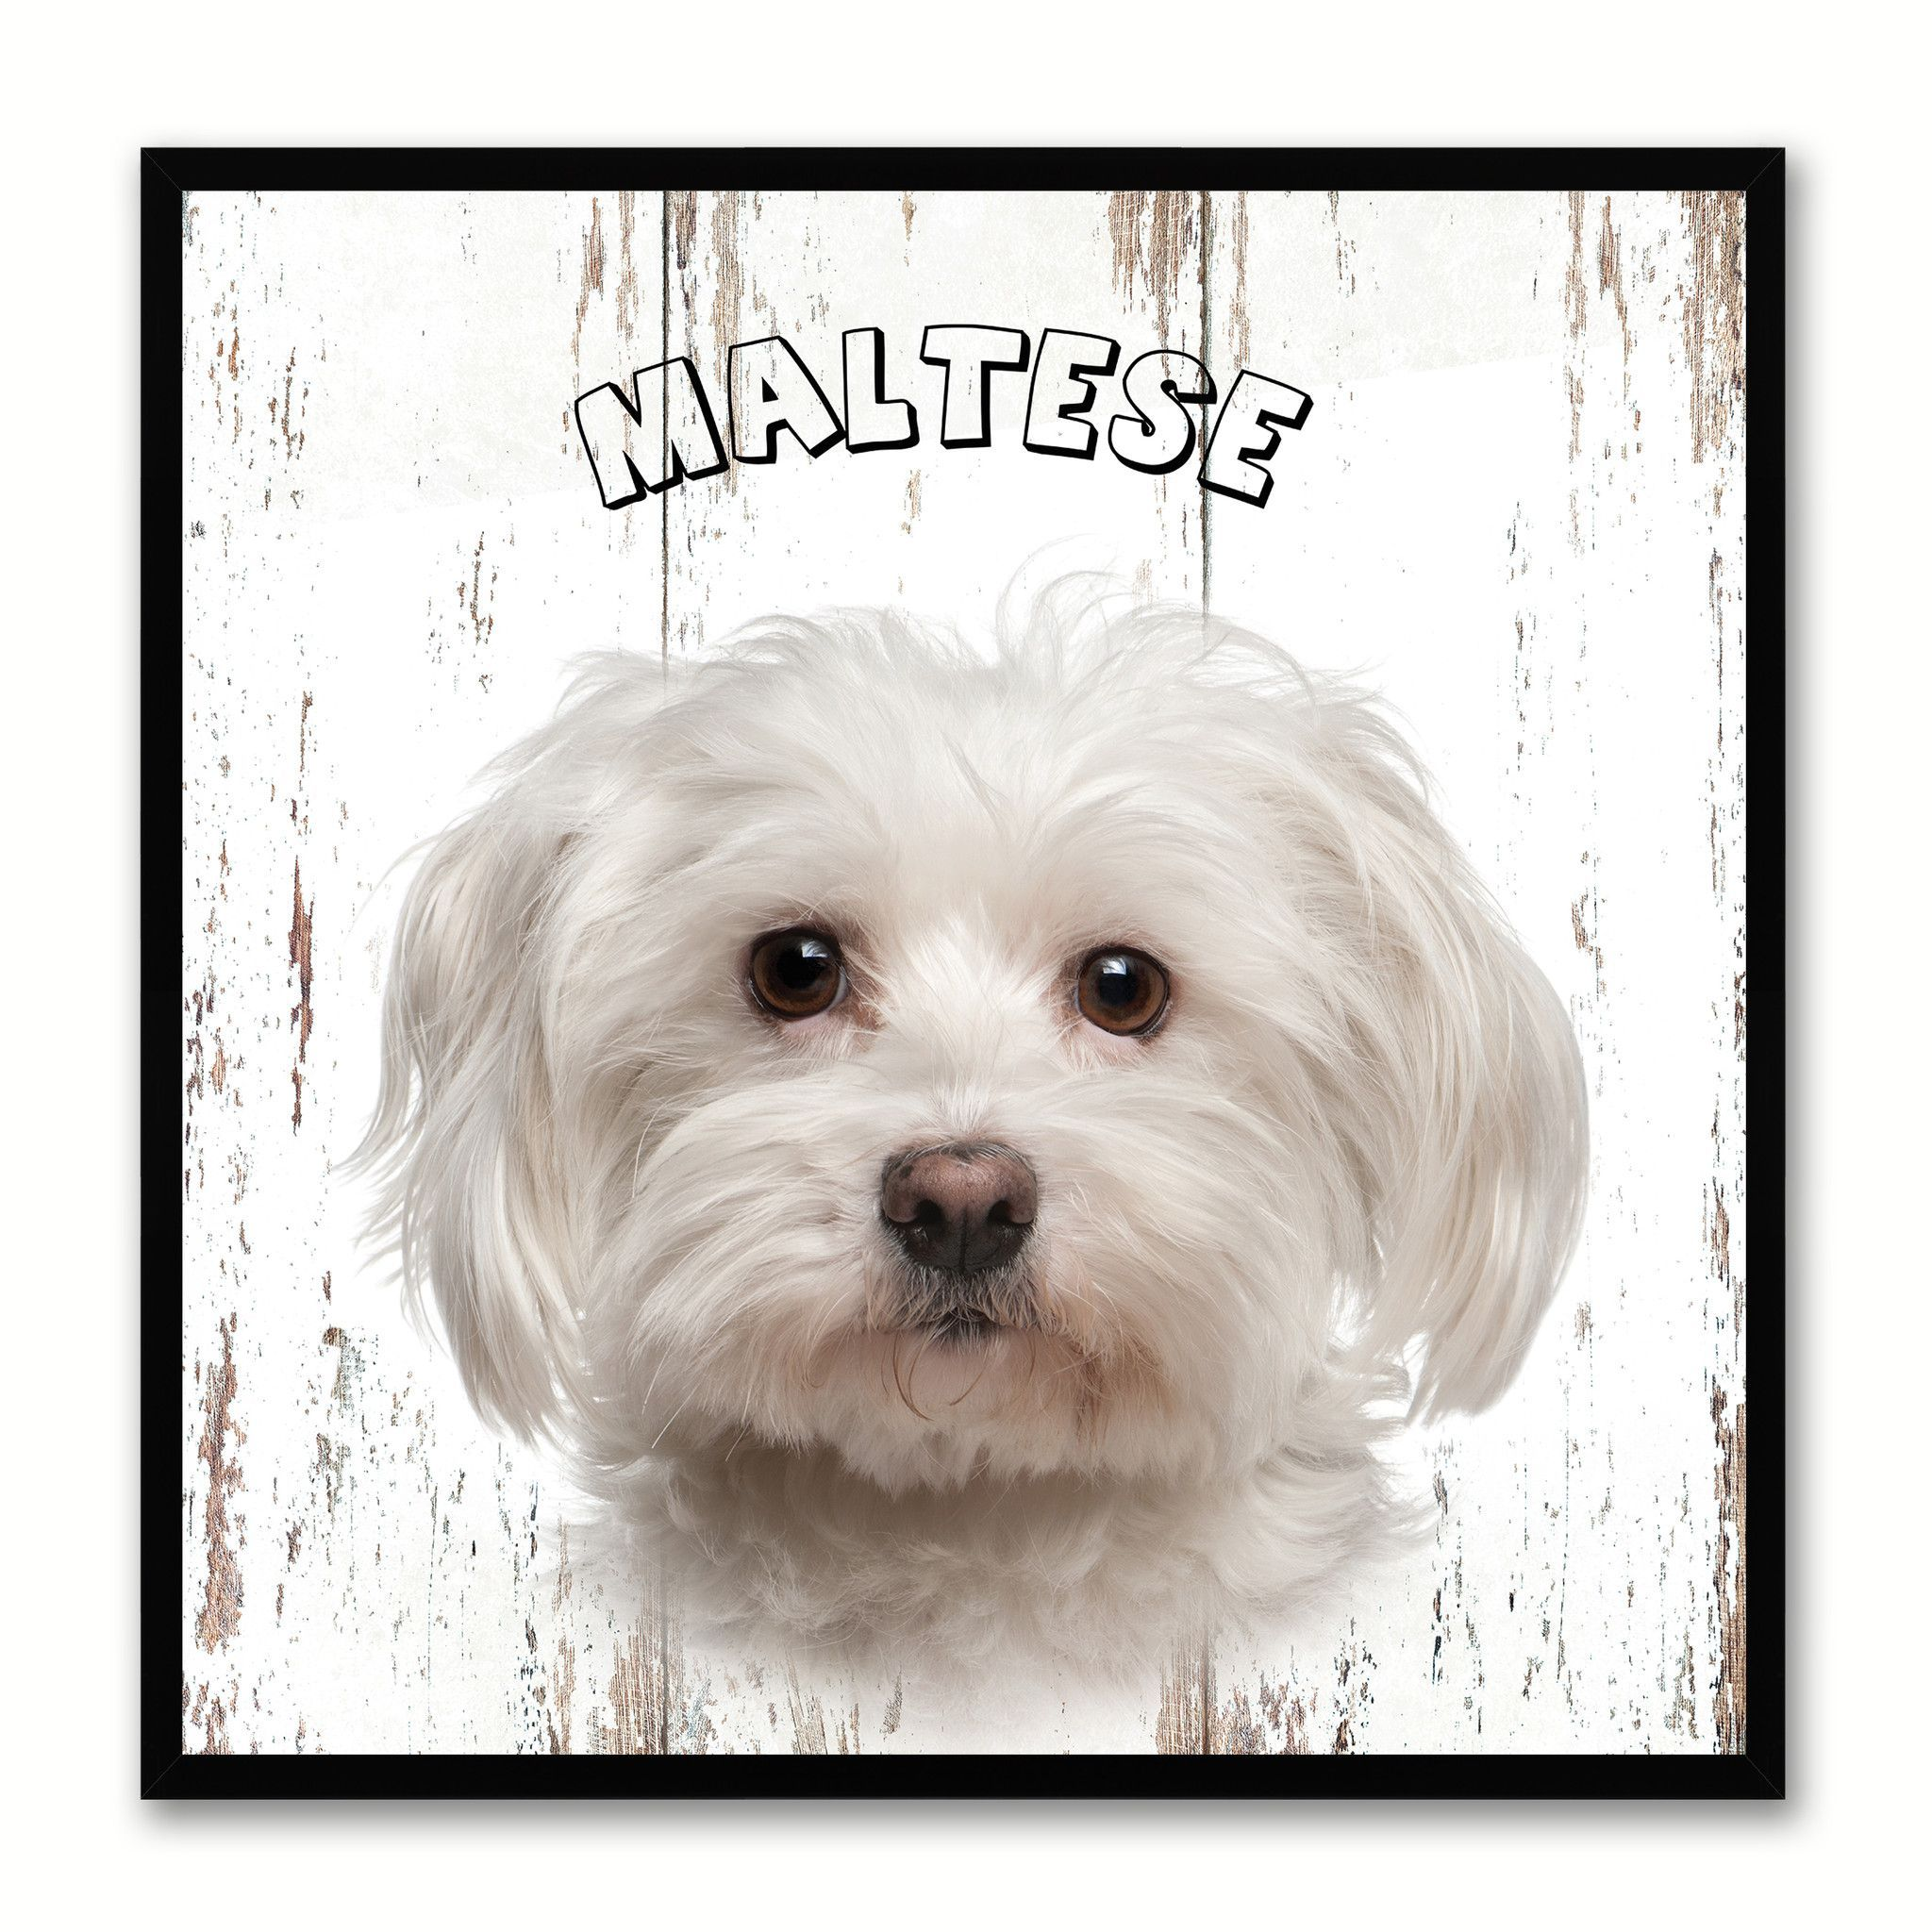 Maltese dog canvas print picture frame gift home decor wall art maltese dog canvas print picture frame gift home decor wall art decoration jeuxipadfo Images